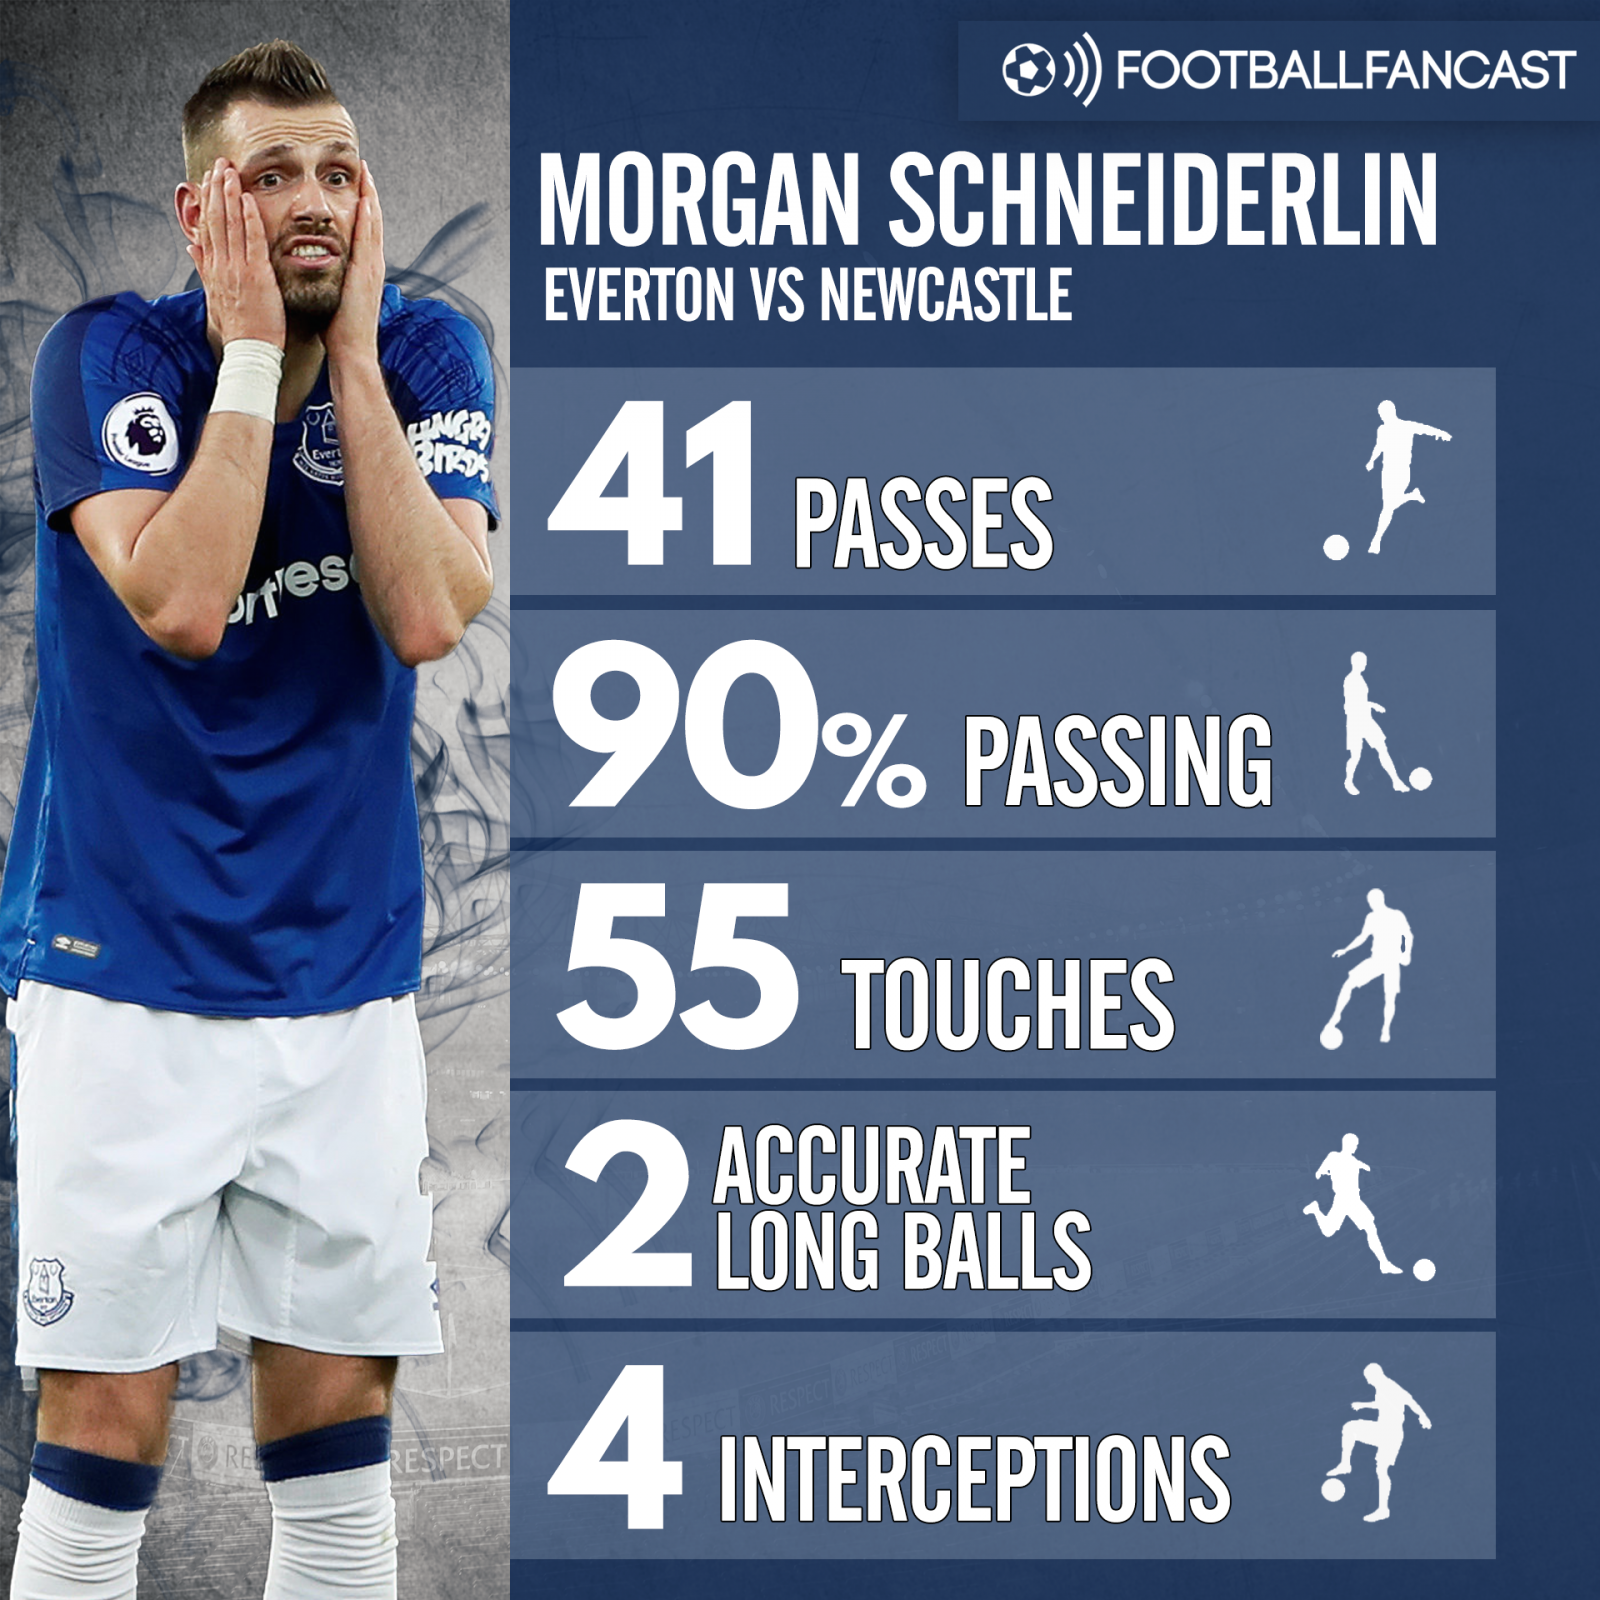 Schneiderlin stats vs Newcastle